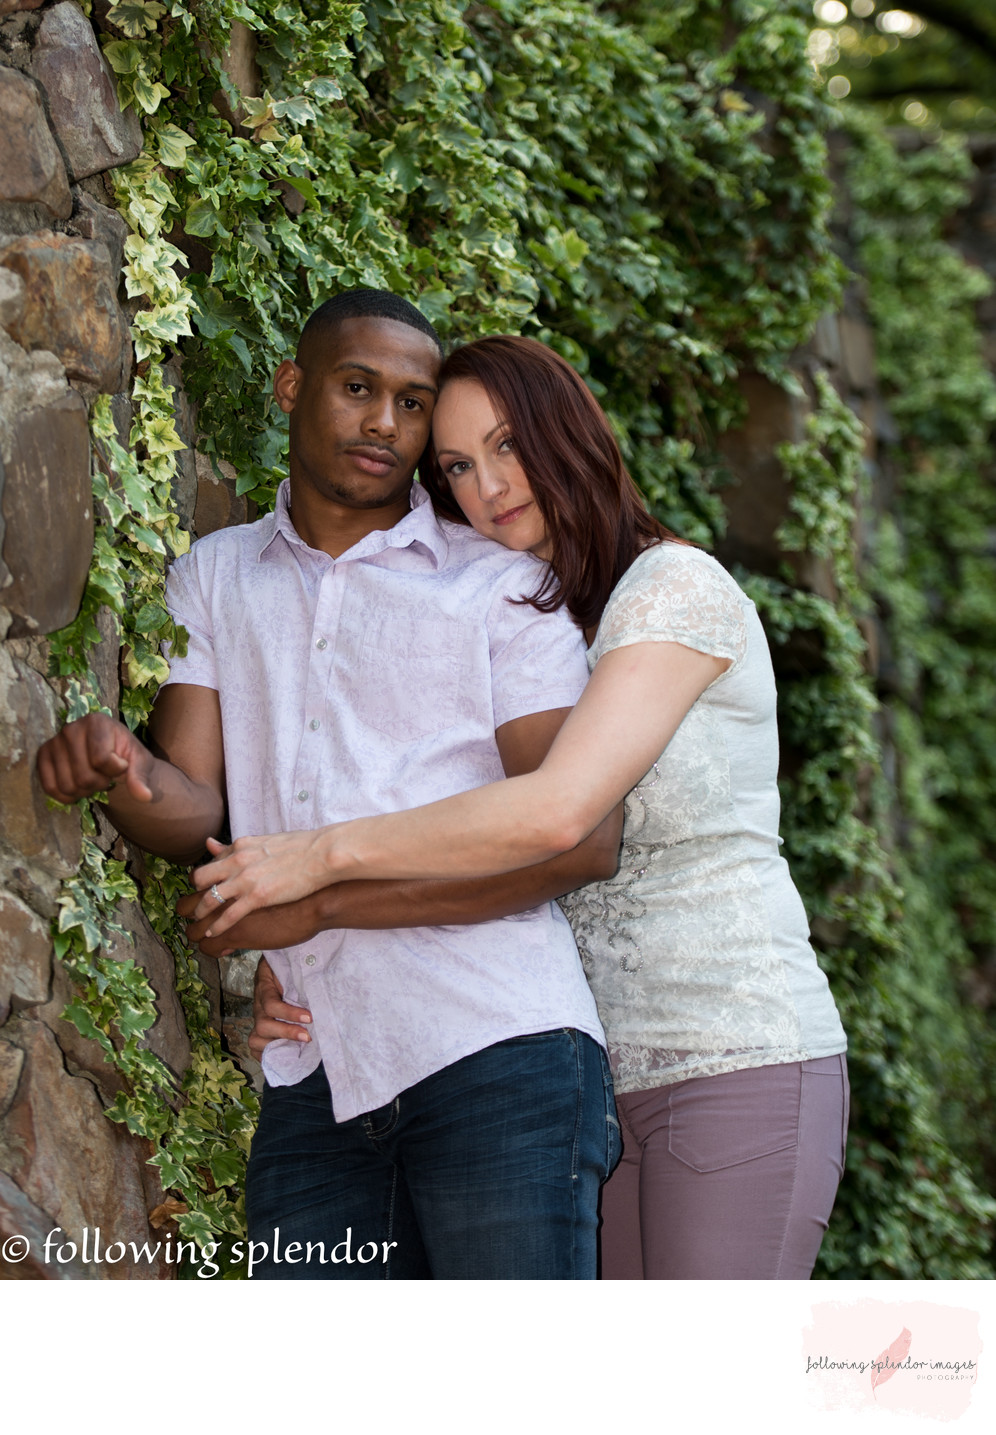 Stone wall for engagement photos makes a great background